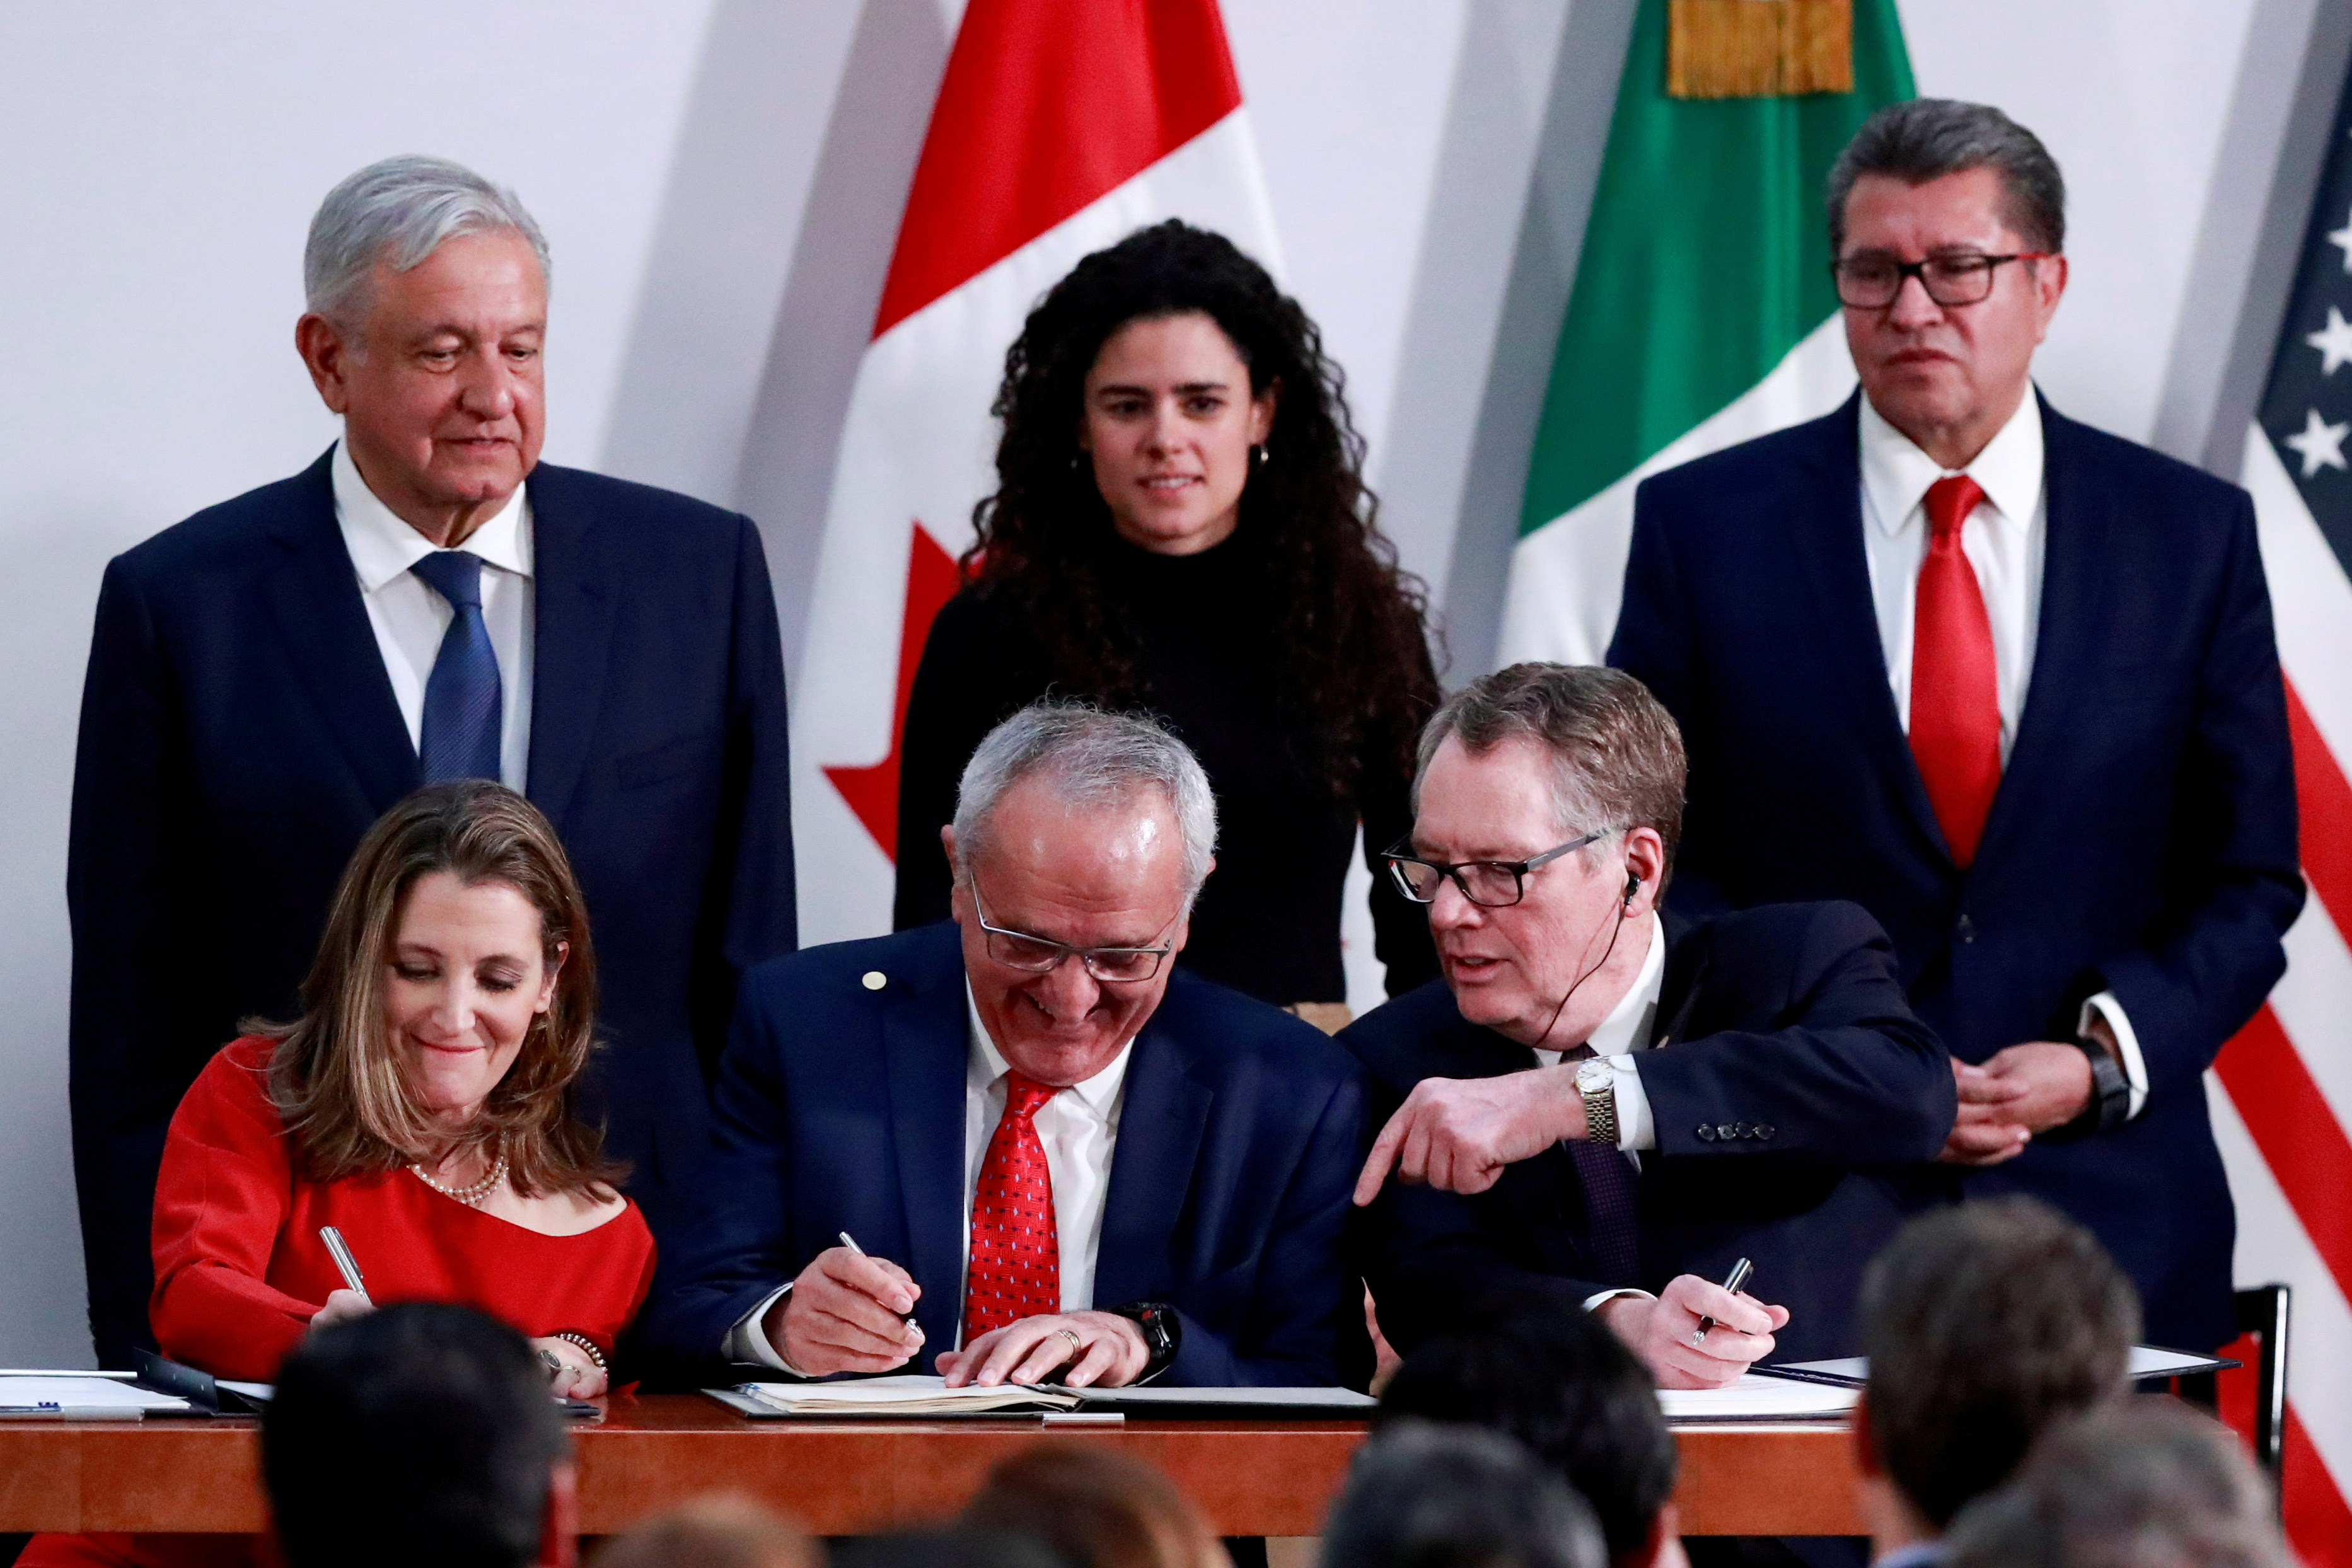 Mexico's President Andres Manuel Lopez Obrador looks on as Canadian Deputy Prime Minister Chrystia Freeland, Mexican Deputy Foreign Minister for North America Jesus Seade, and U.S. Trade Representative Robert Lighthizer sign documents during a meeting at the Presidential Palace, in Mexico City, Mexico December 10, 2019. REUTERS/Henry Romero/File Photo